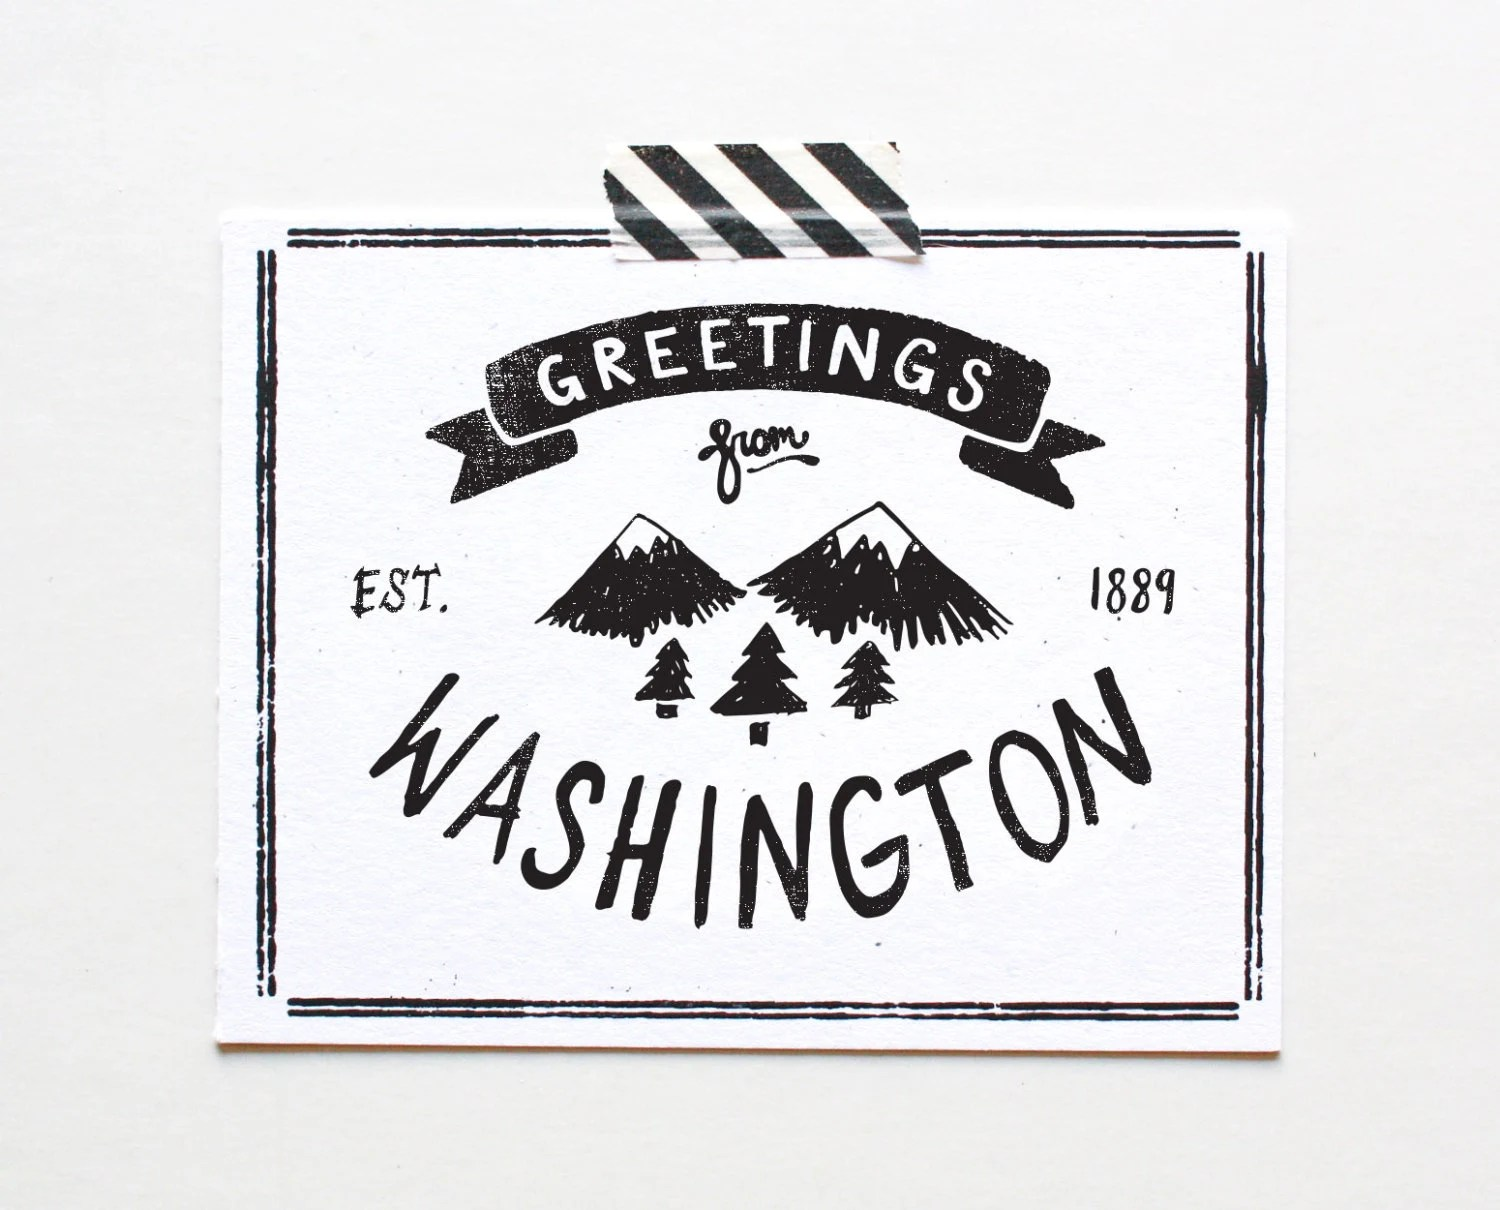 State of Washington Postcard Screenprinted